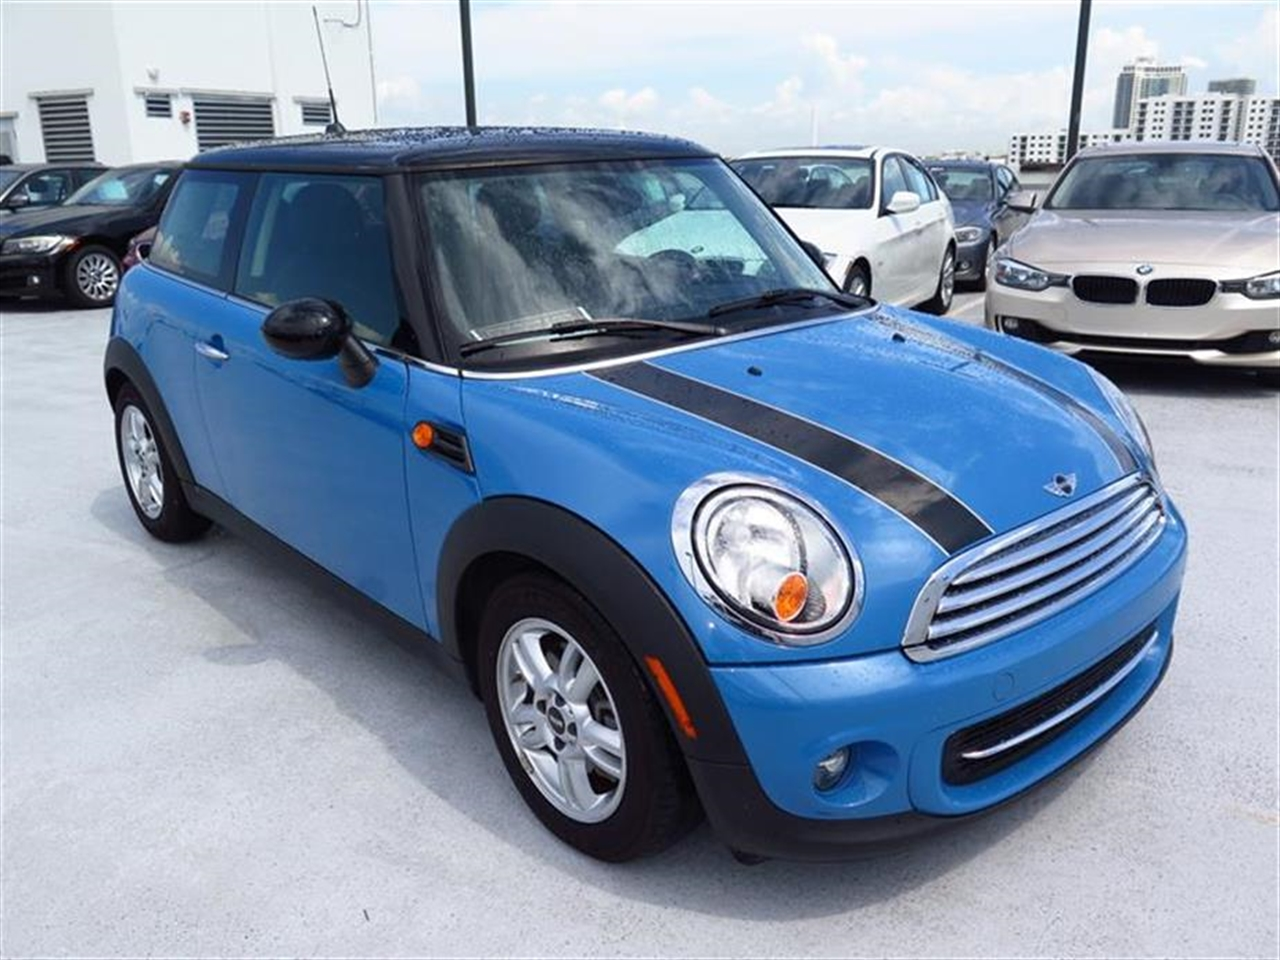 2013 MINI COOPER HARDTOP 2dr Cpe 13236 miles 1 rear cup holder 12V auxiliary pwr outlet in cock